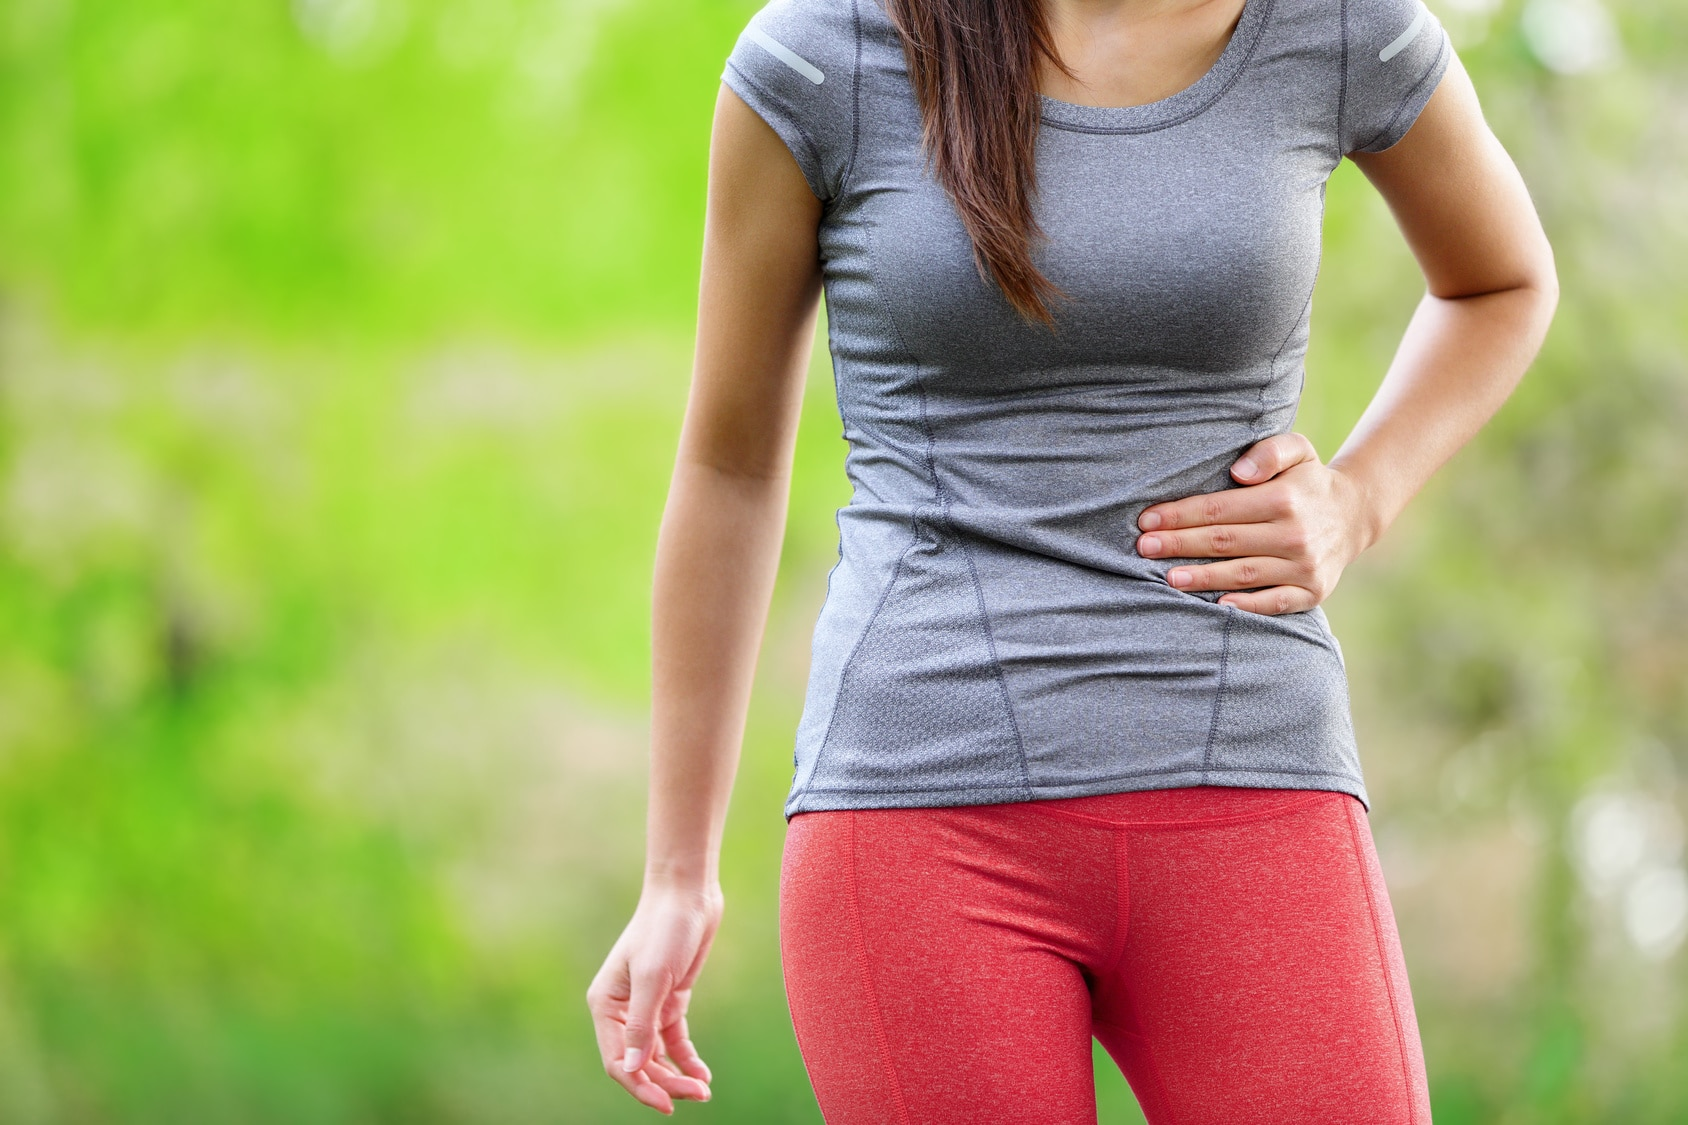 Side stitch - woman runner side cramps